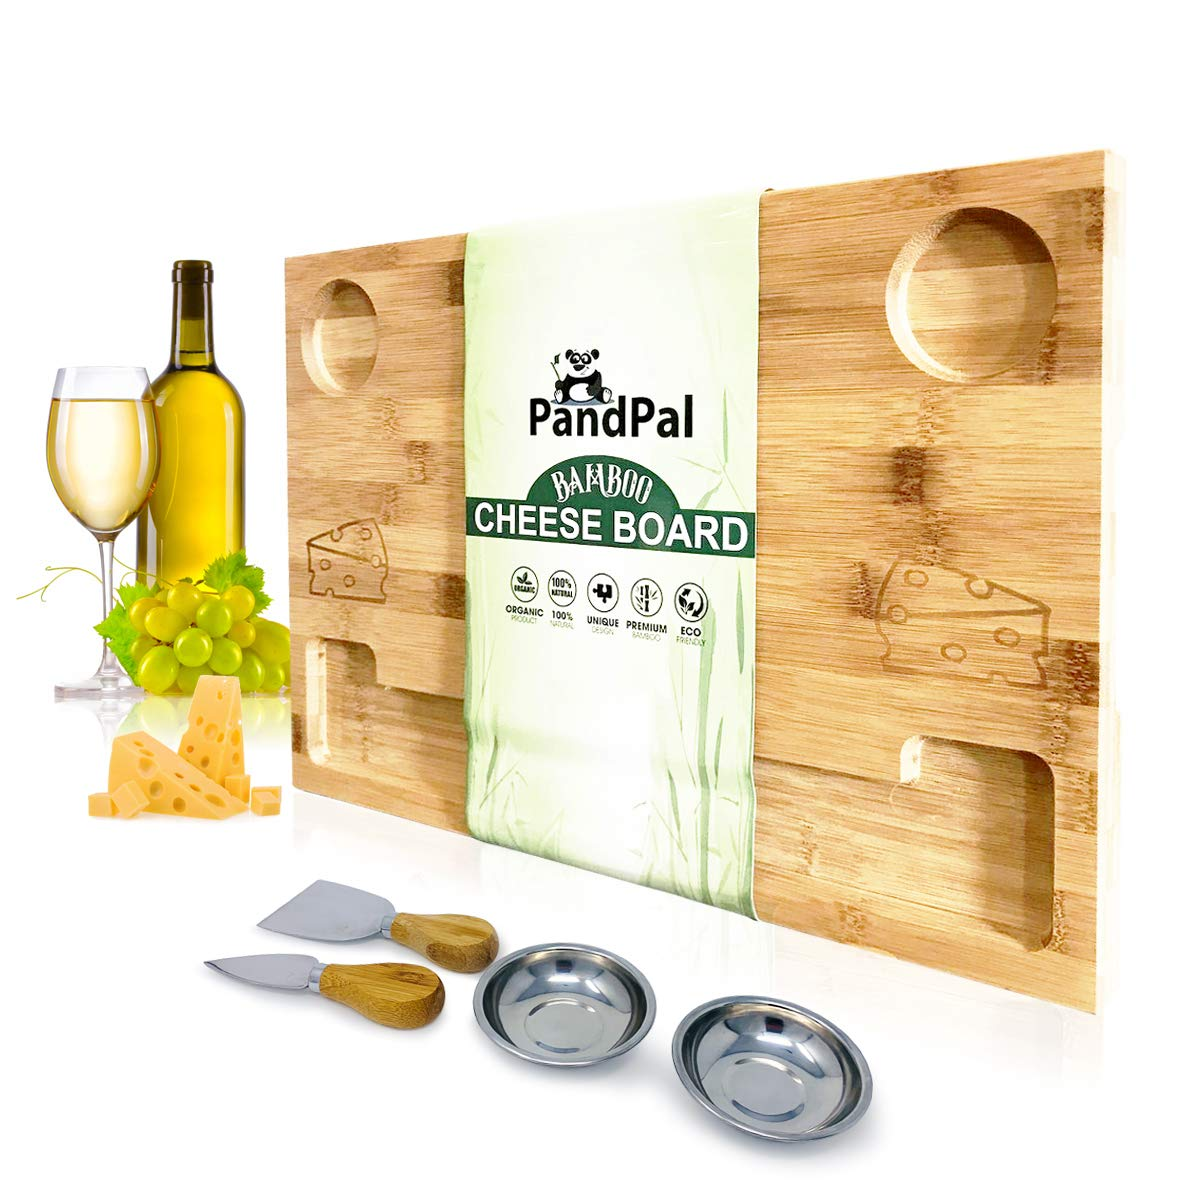 Bamboo Cheese Board Smile & Food Serving Tray - BONUS Stainless Steel KNIVES & BOWLS, Extra LARGE [16x11x1] Wooden Cutting Board Charcuterie Platter for Wine, Cracker, Brie, Meat, Dip, Chip by PandPal by PandPal